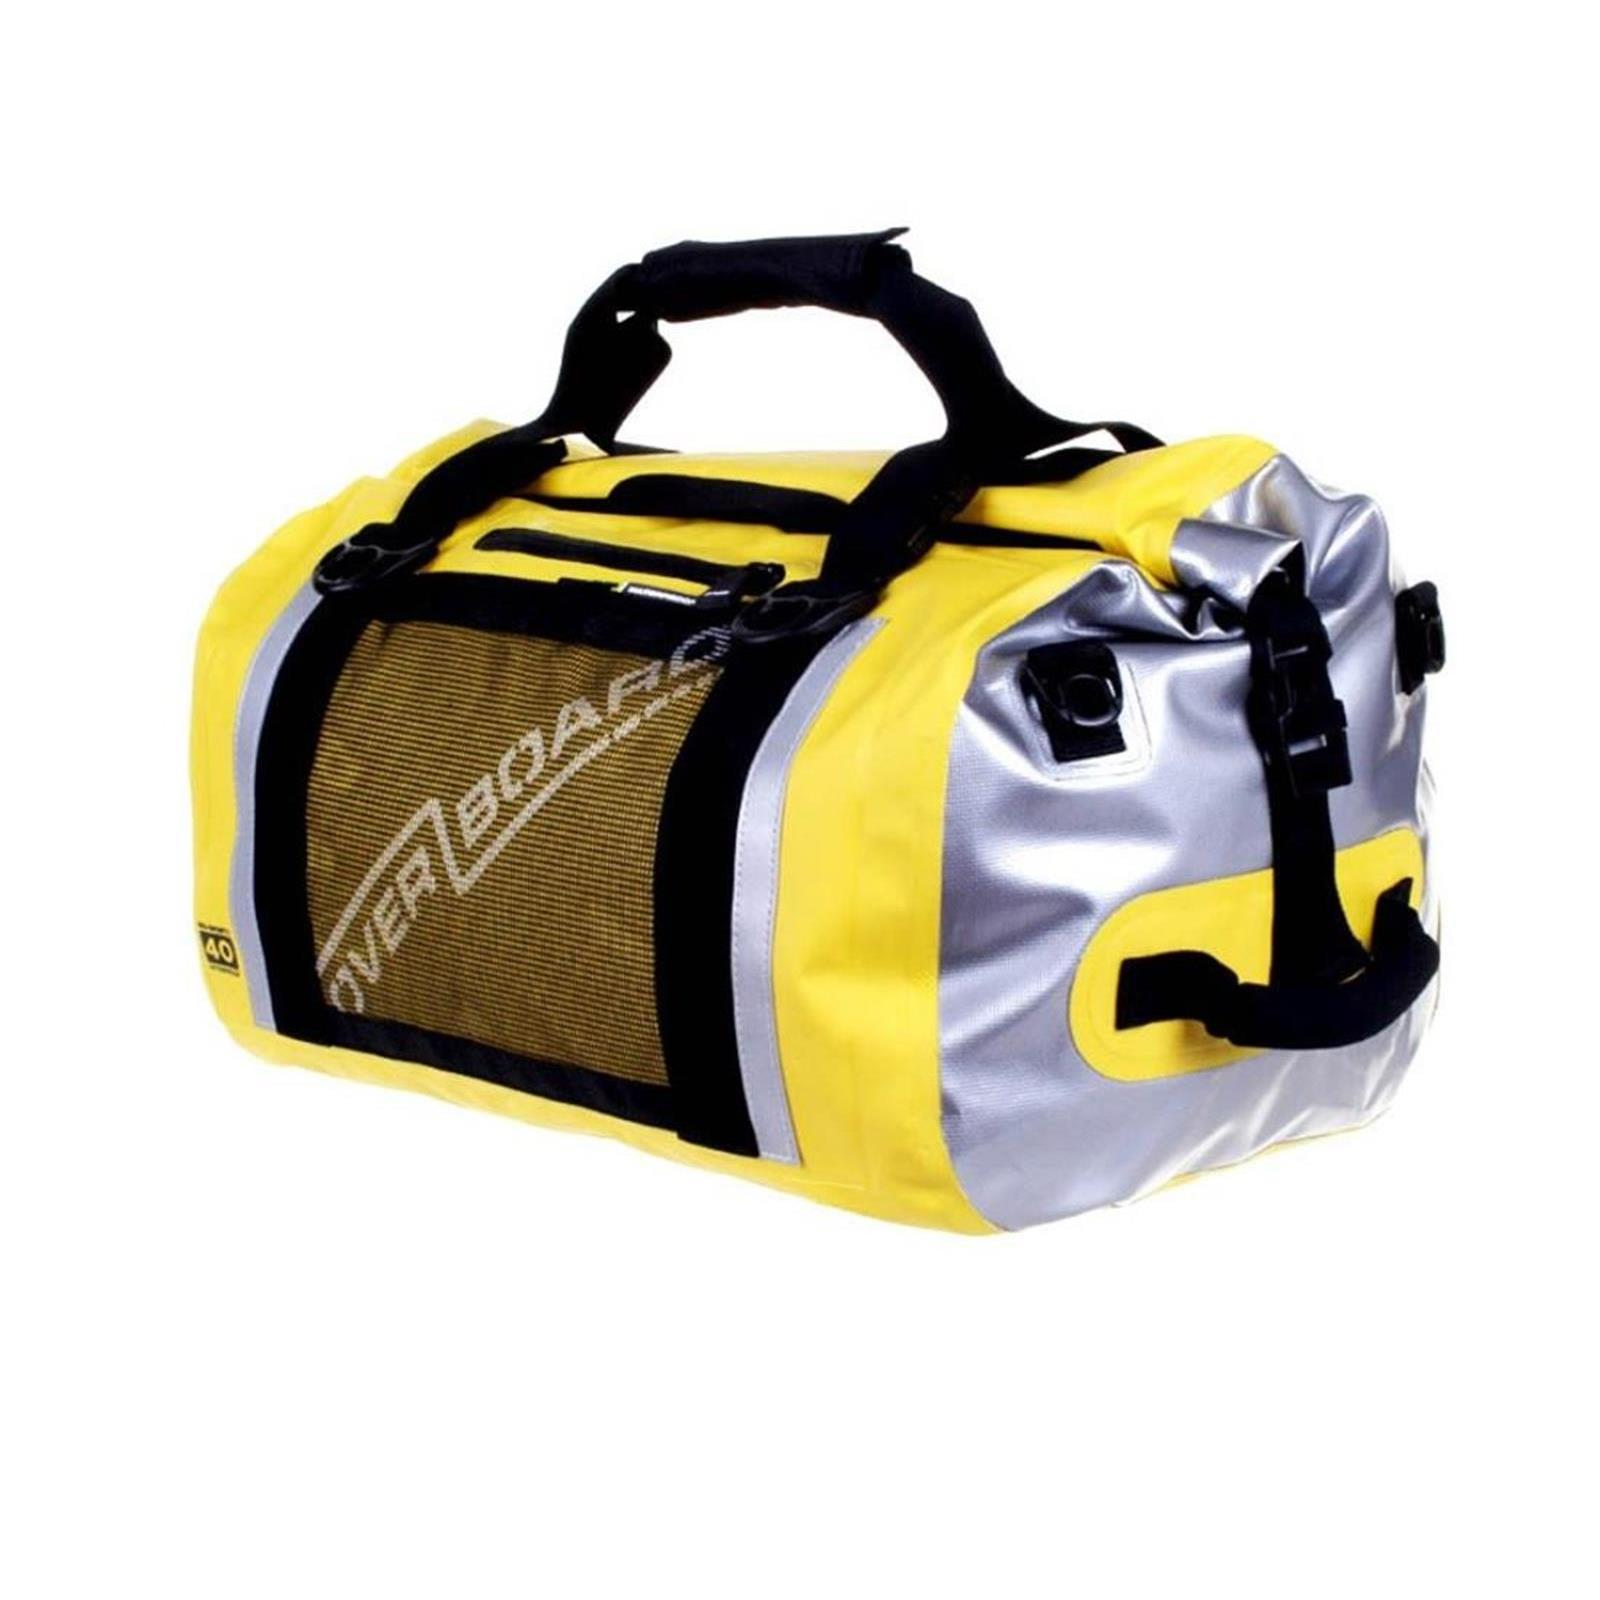 OverBoard wasserdichte Duffel Bag Sports 40 L Gelb OB1153Y Pro Sports